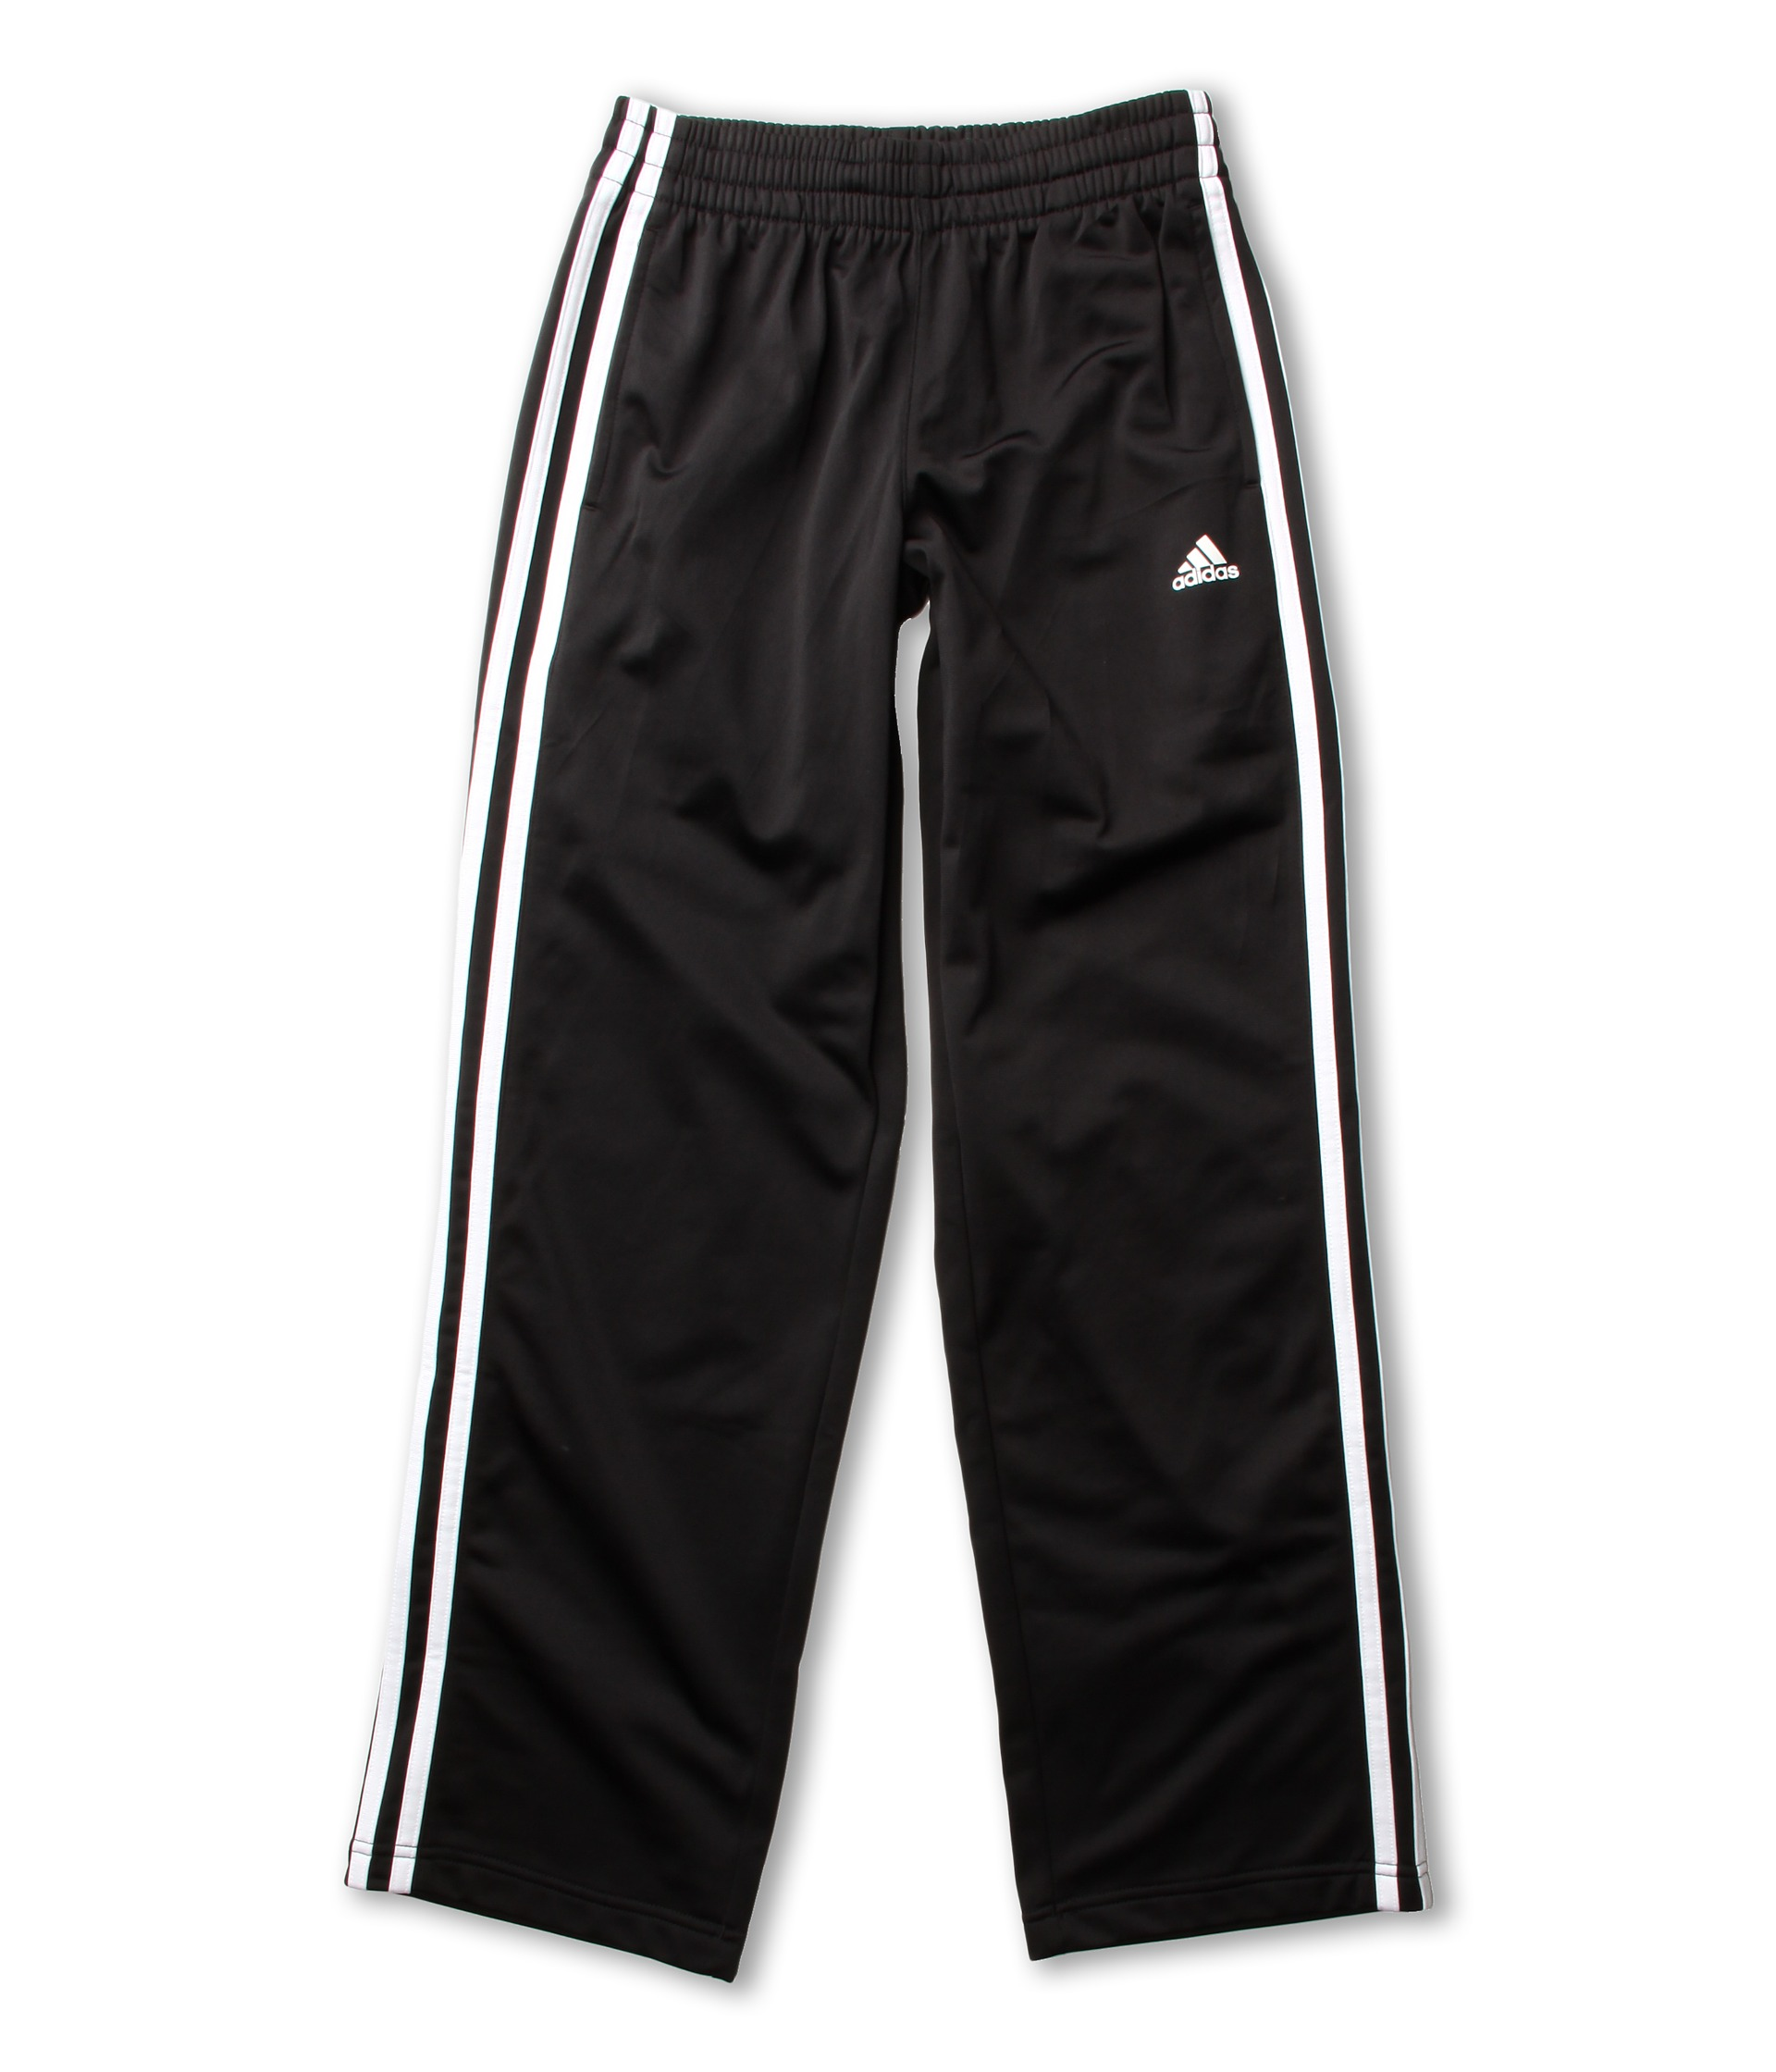 Comfortable sweatpants for kids in numerous colours and patterns. At House of Kids, we provide the softest sweatpants and tracksuits for boys and girls.